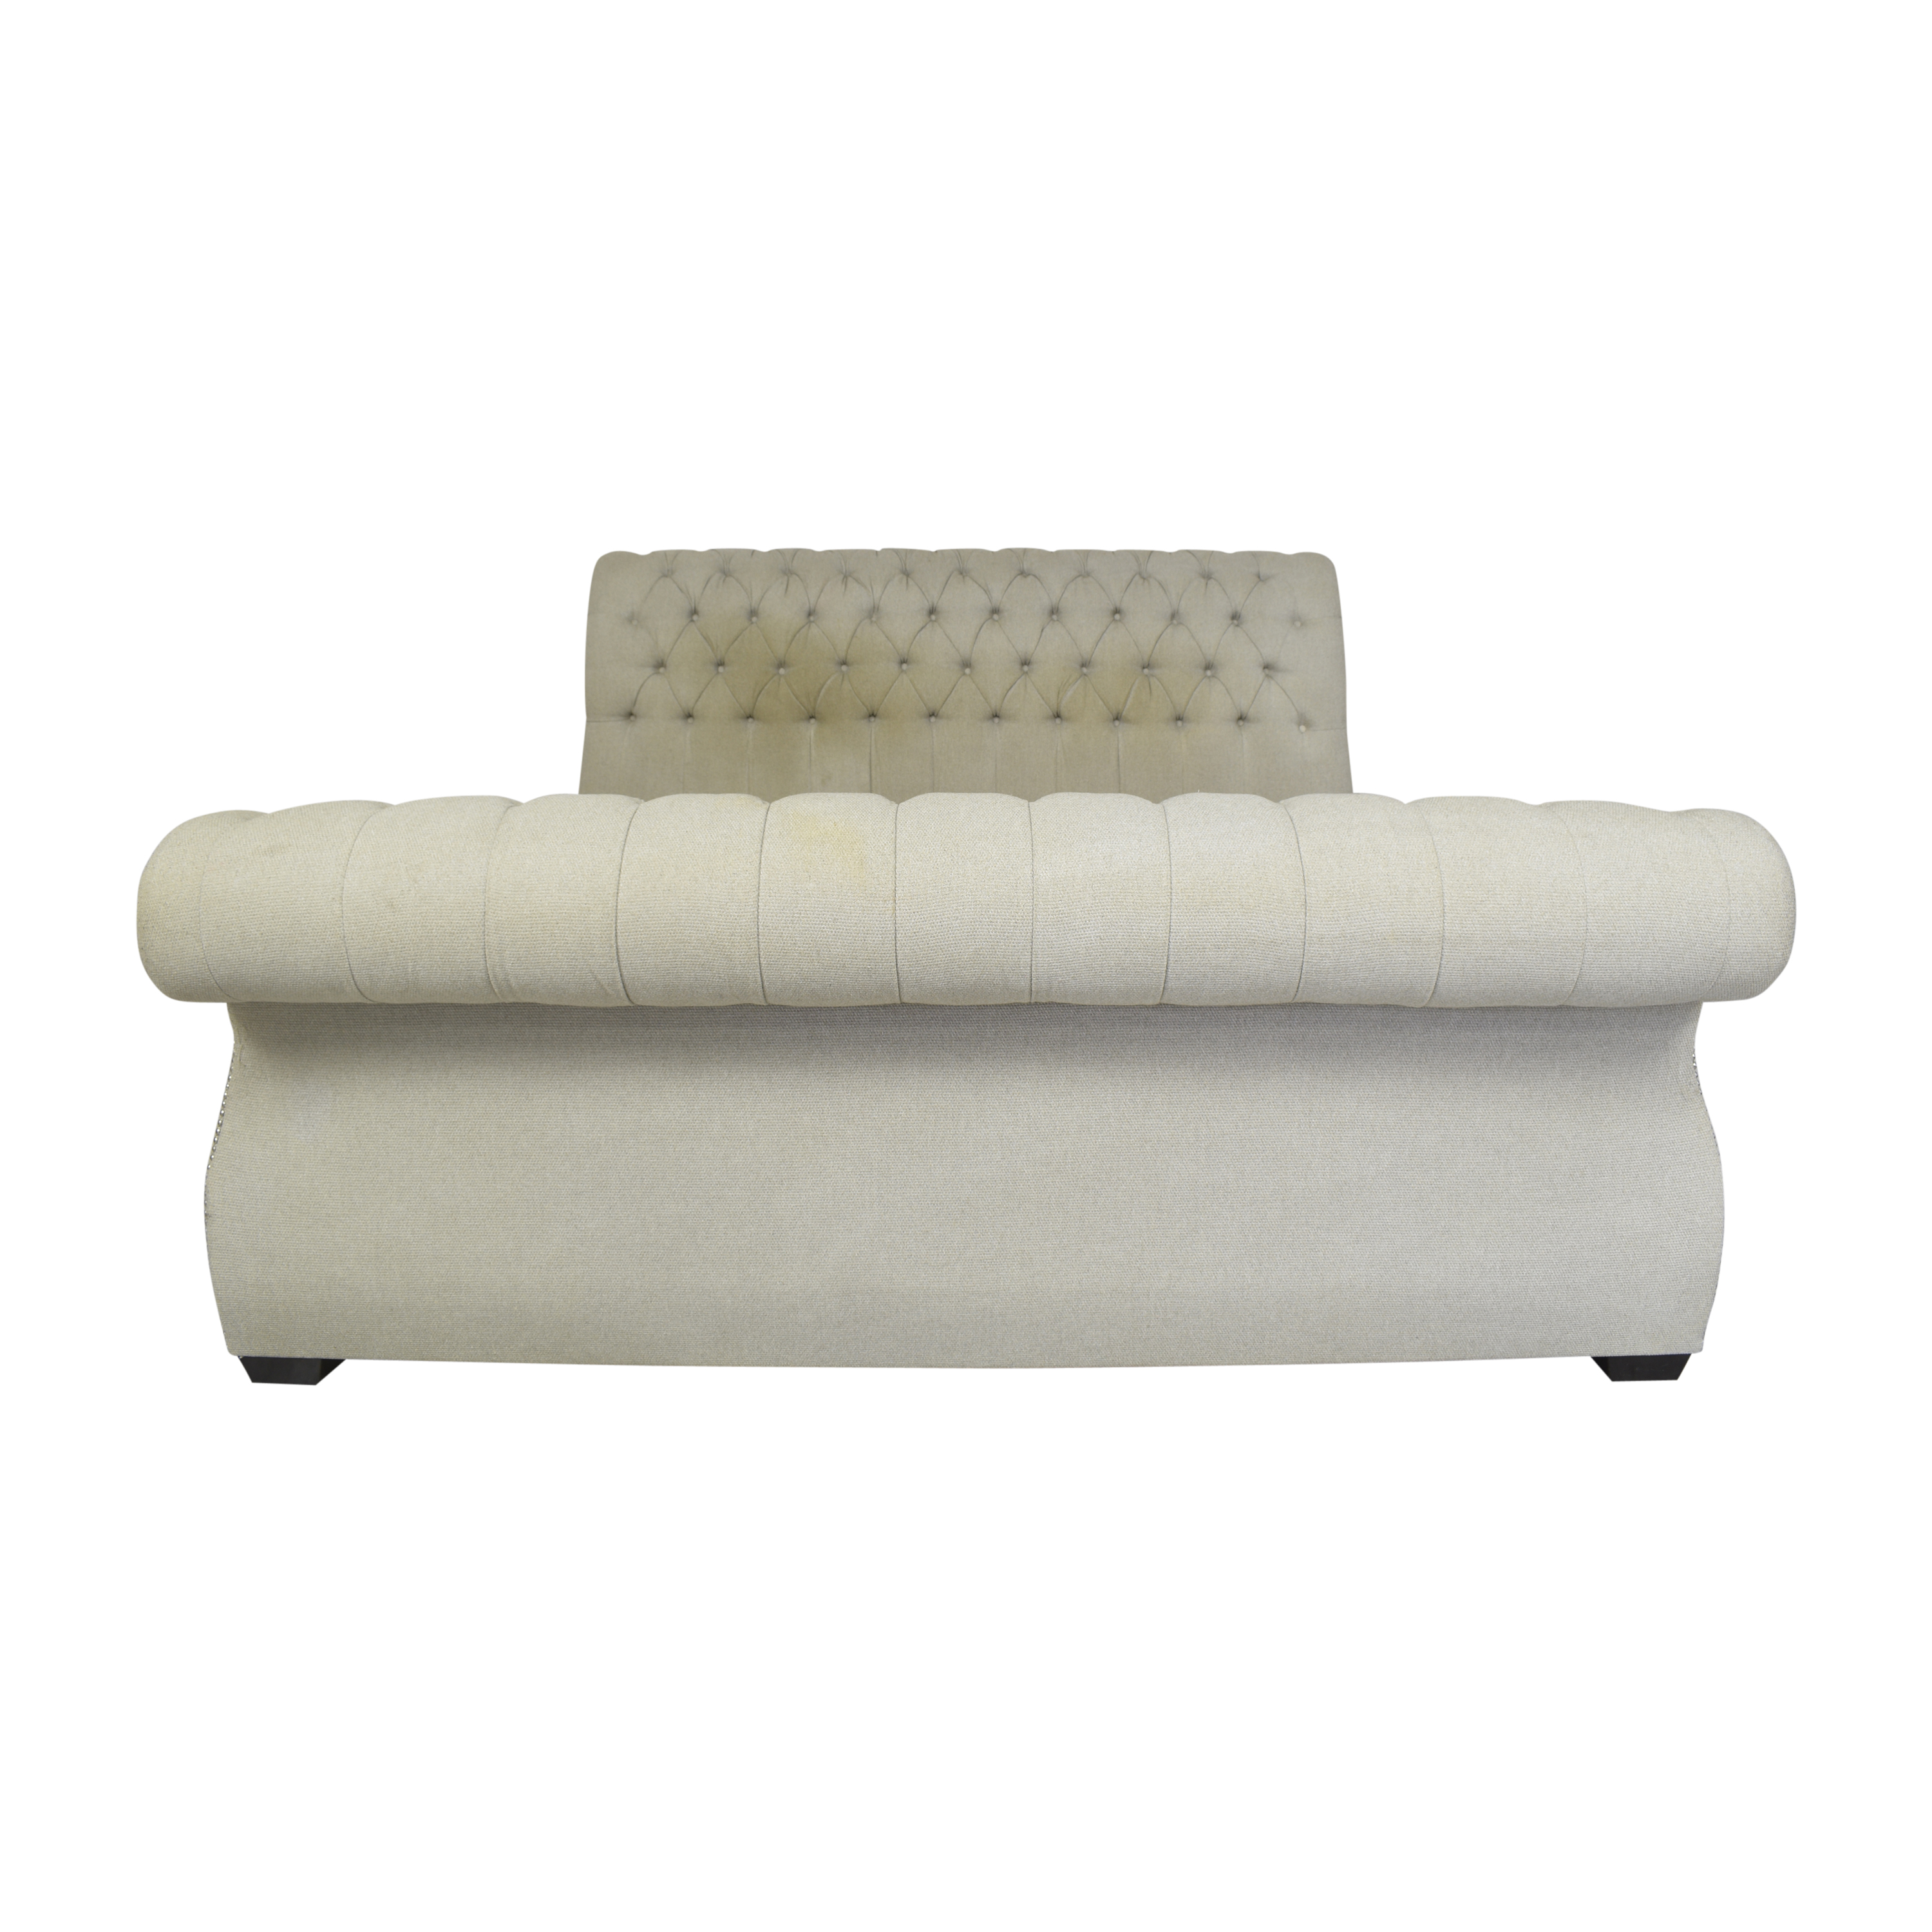 Macy's Macy's Tufted King Sleigh Bed dimensions